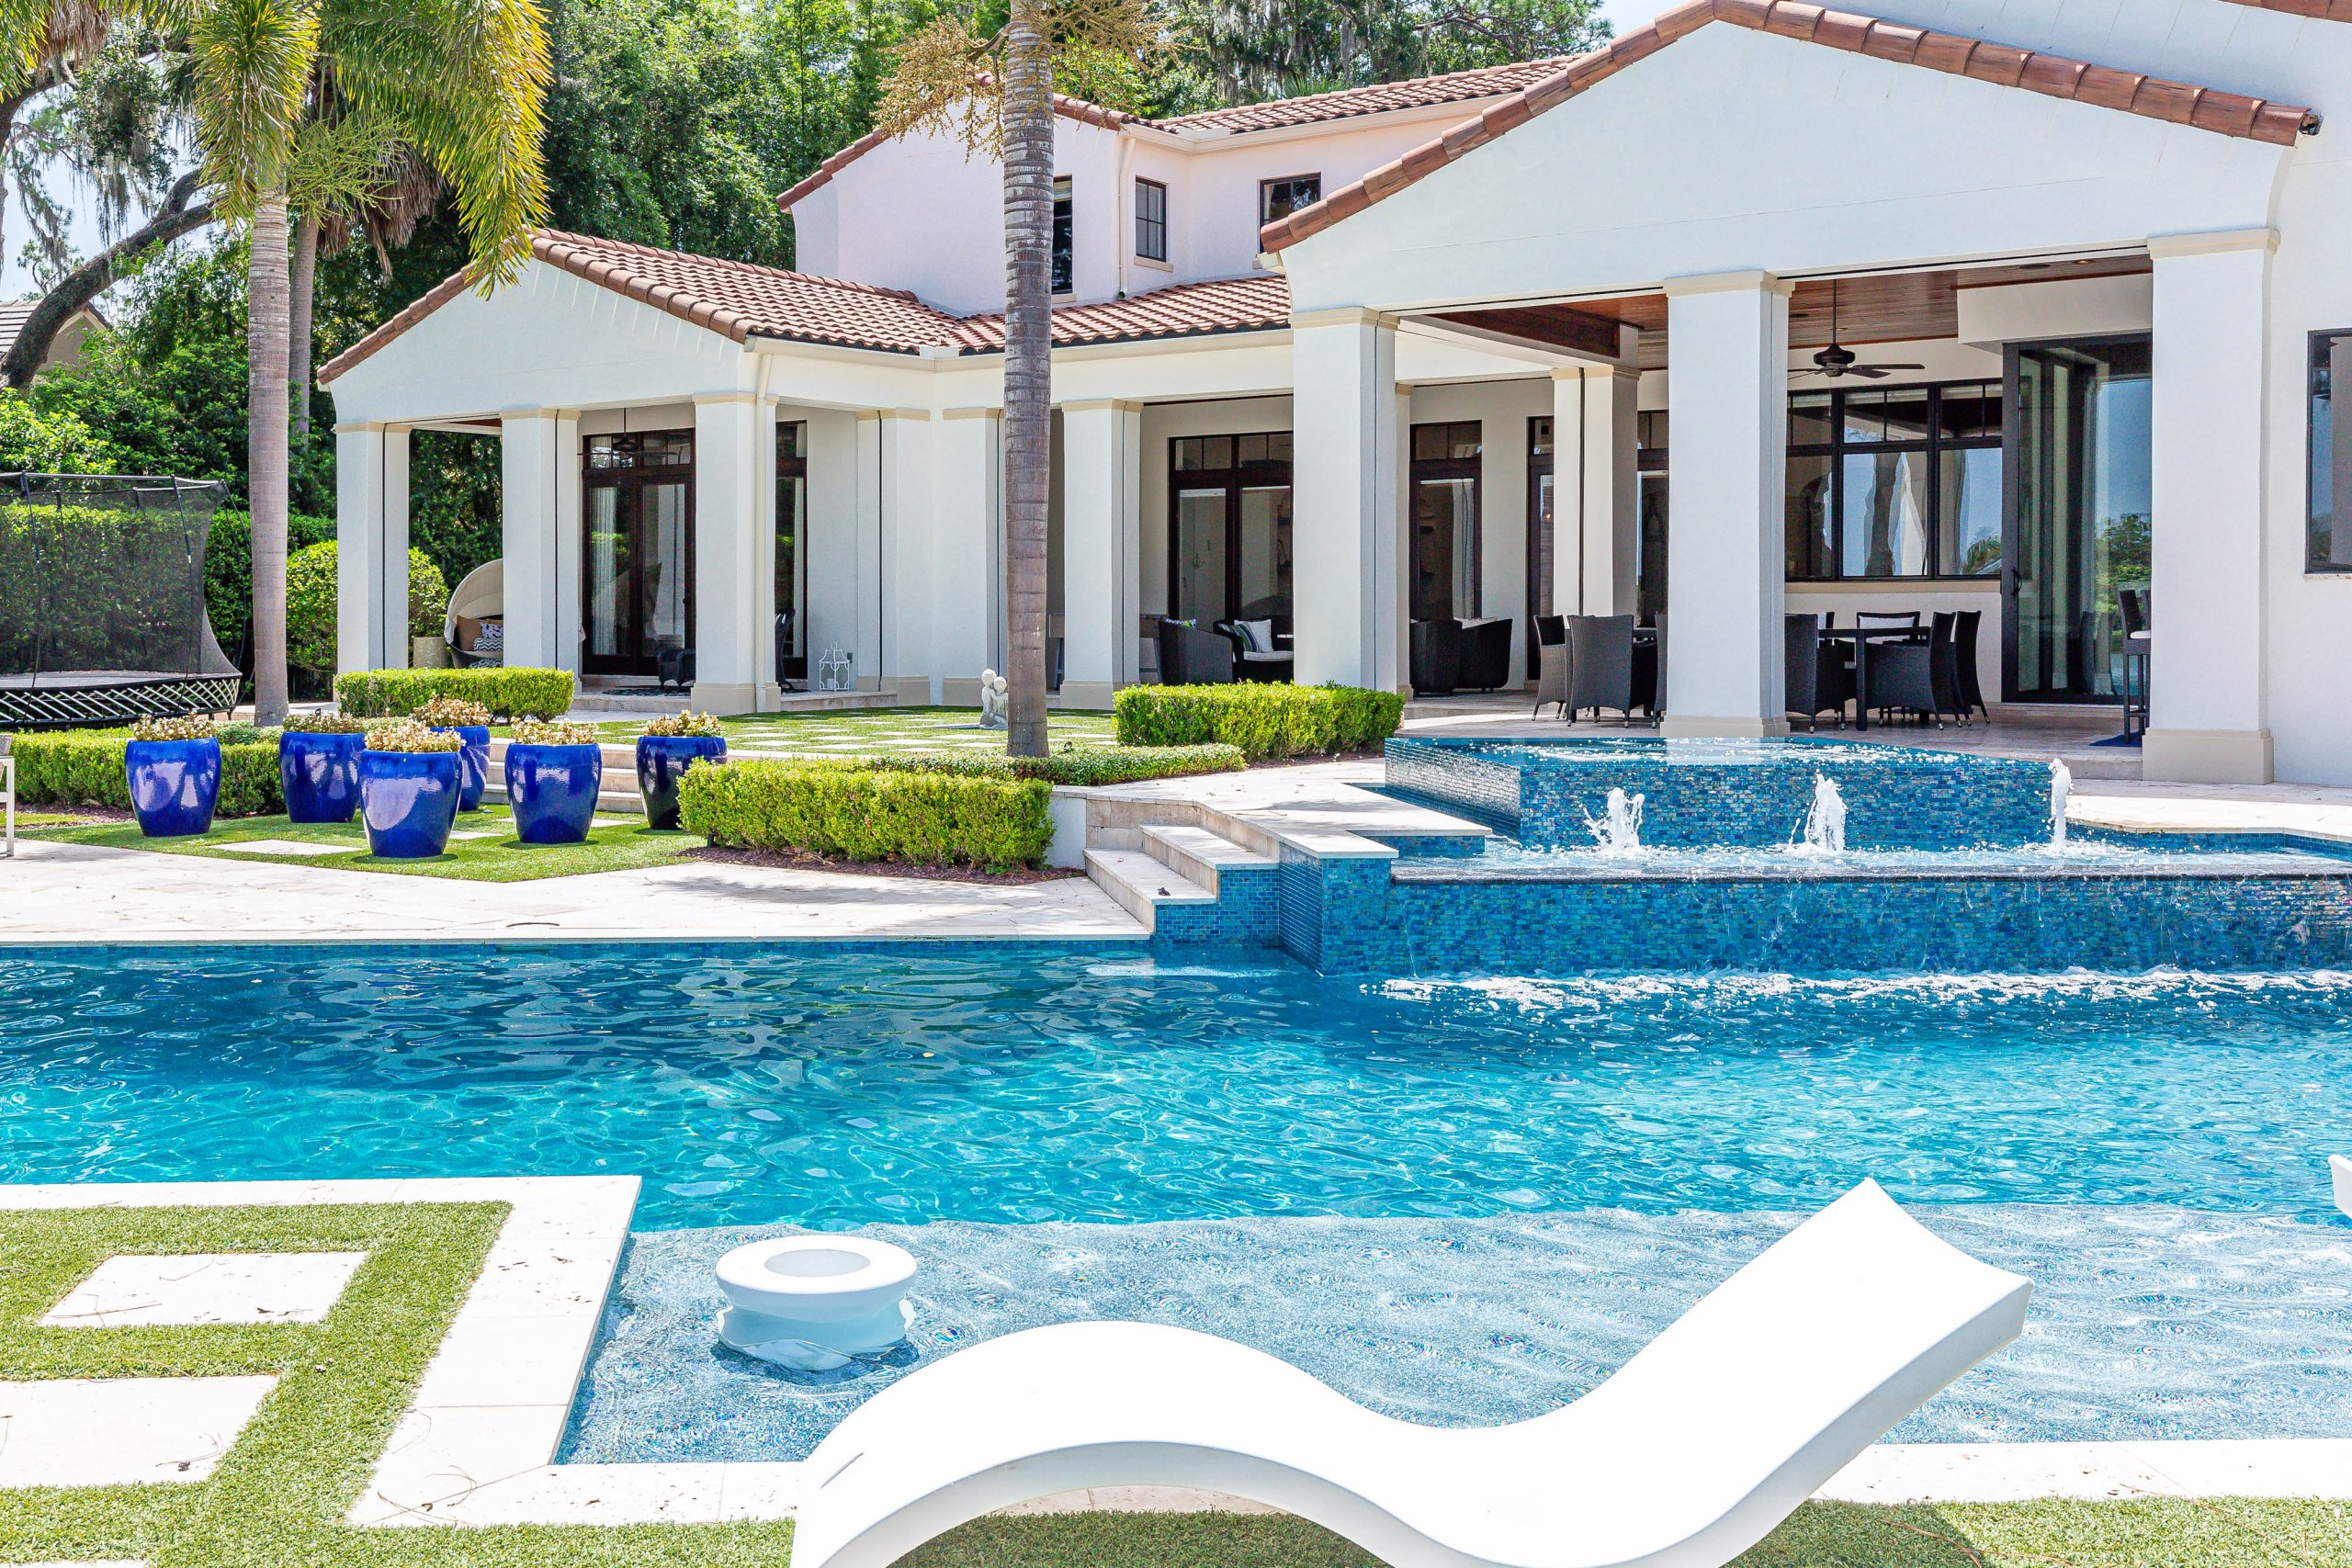 beautiful backside exterior and pool of custom home built by Einheit home builders